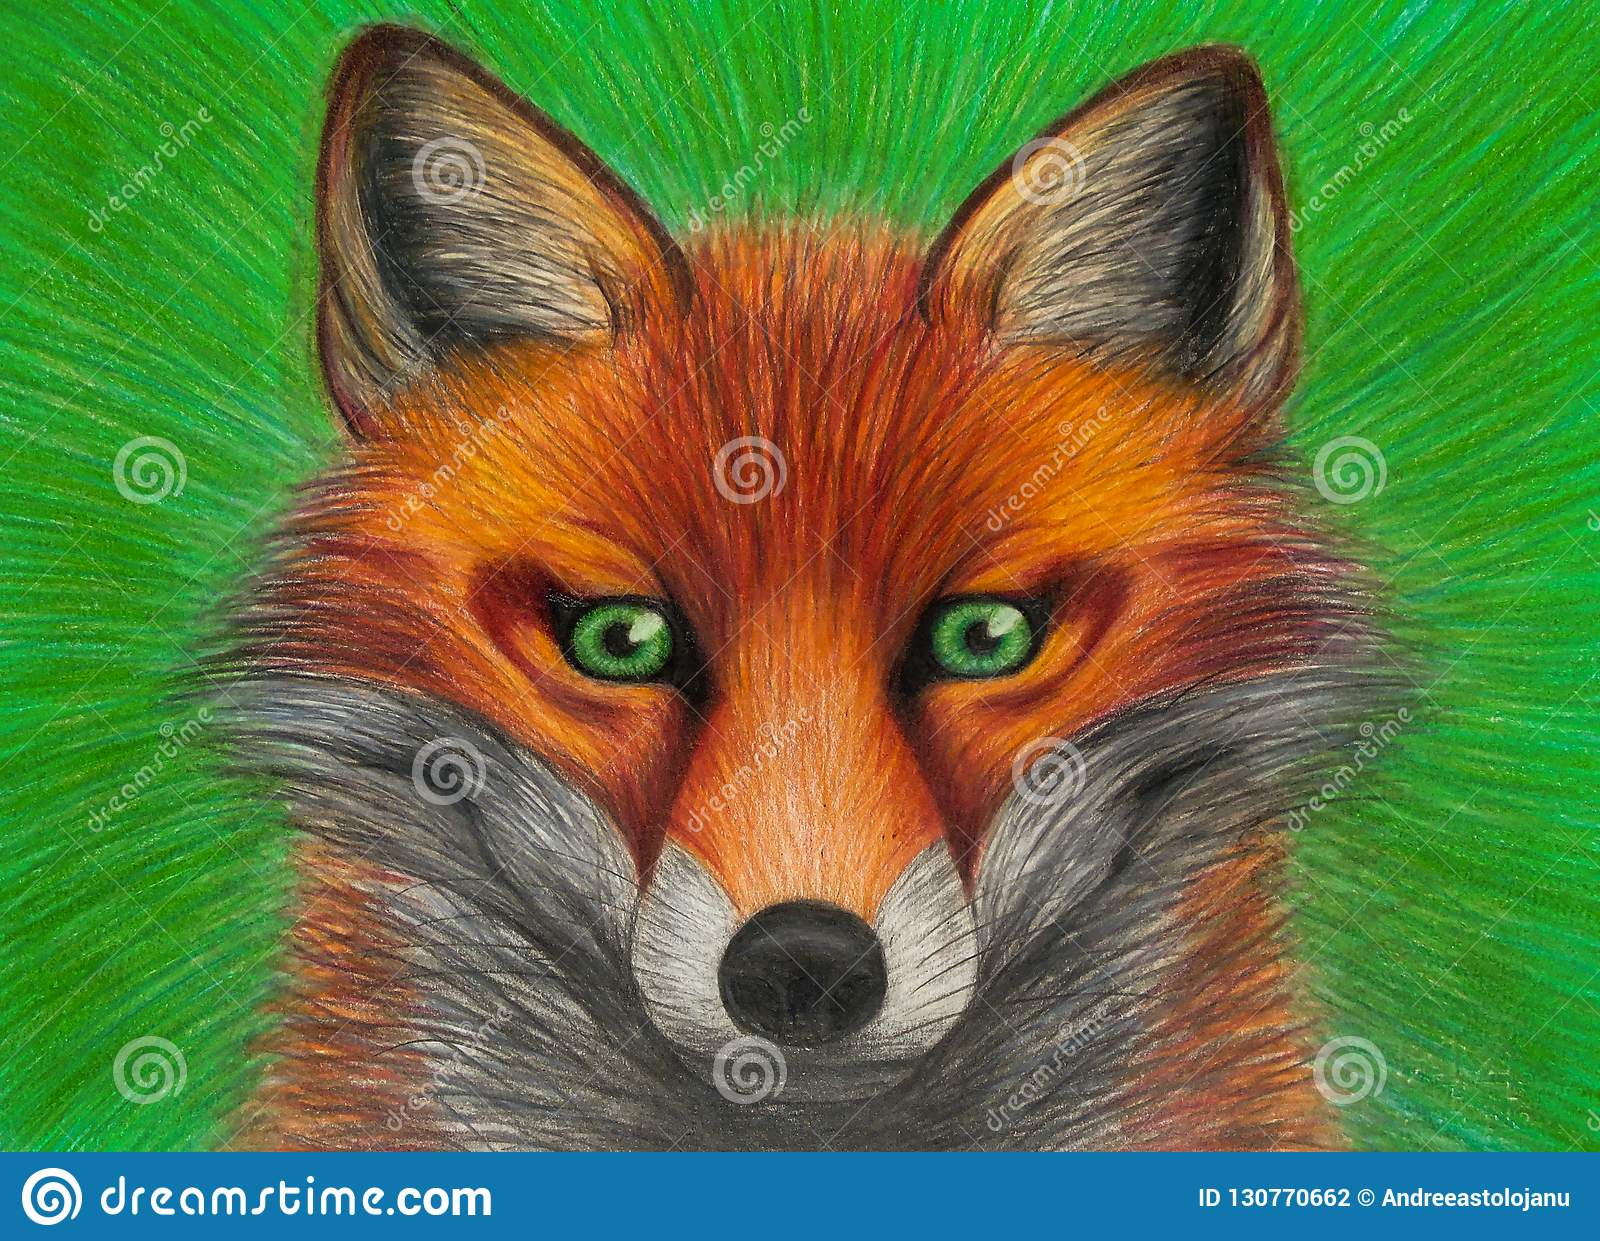 Drawing of portrait of red fox with green eyes on green background, closeup of orange animal, carnivor with beautiful colored fur